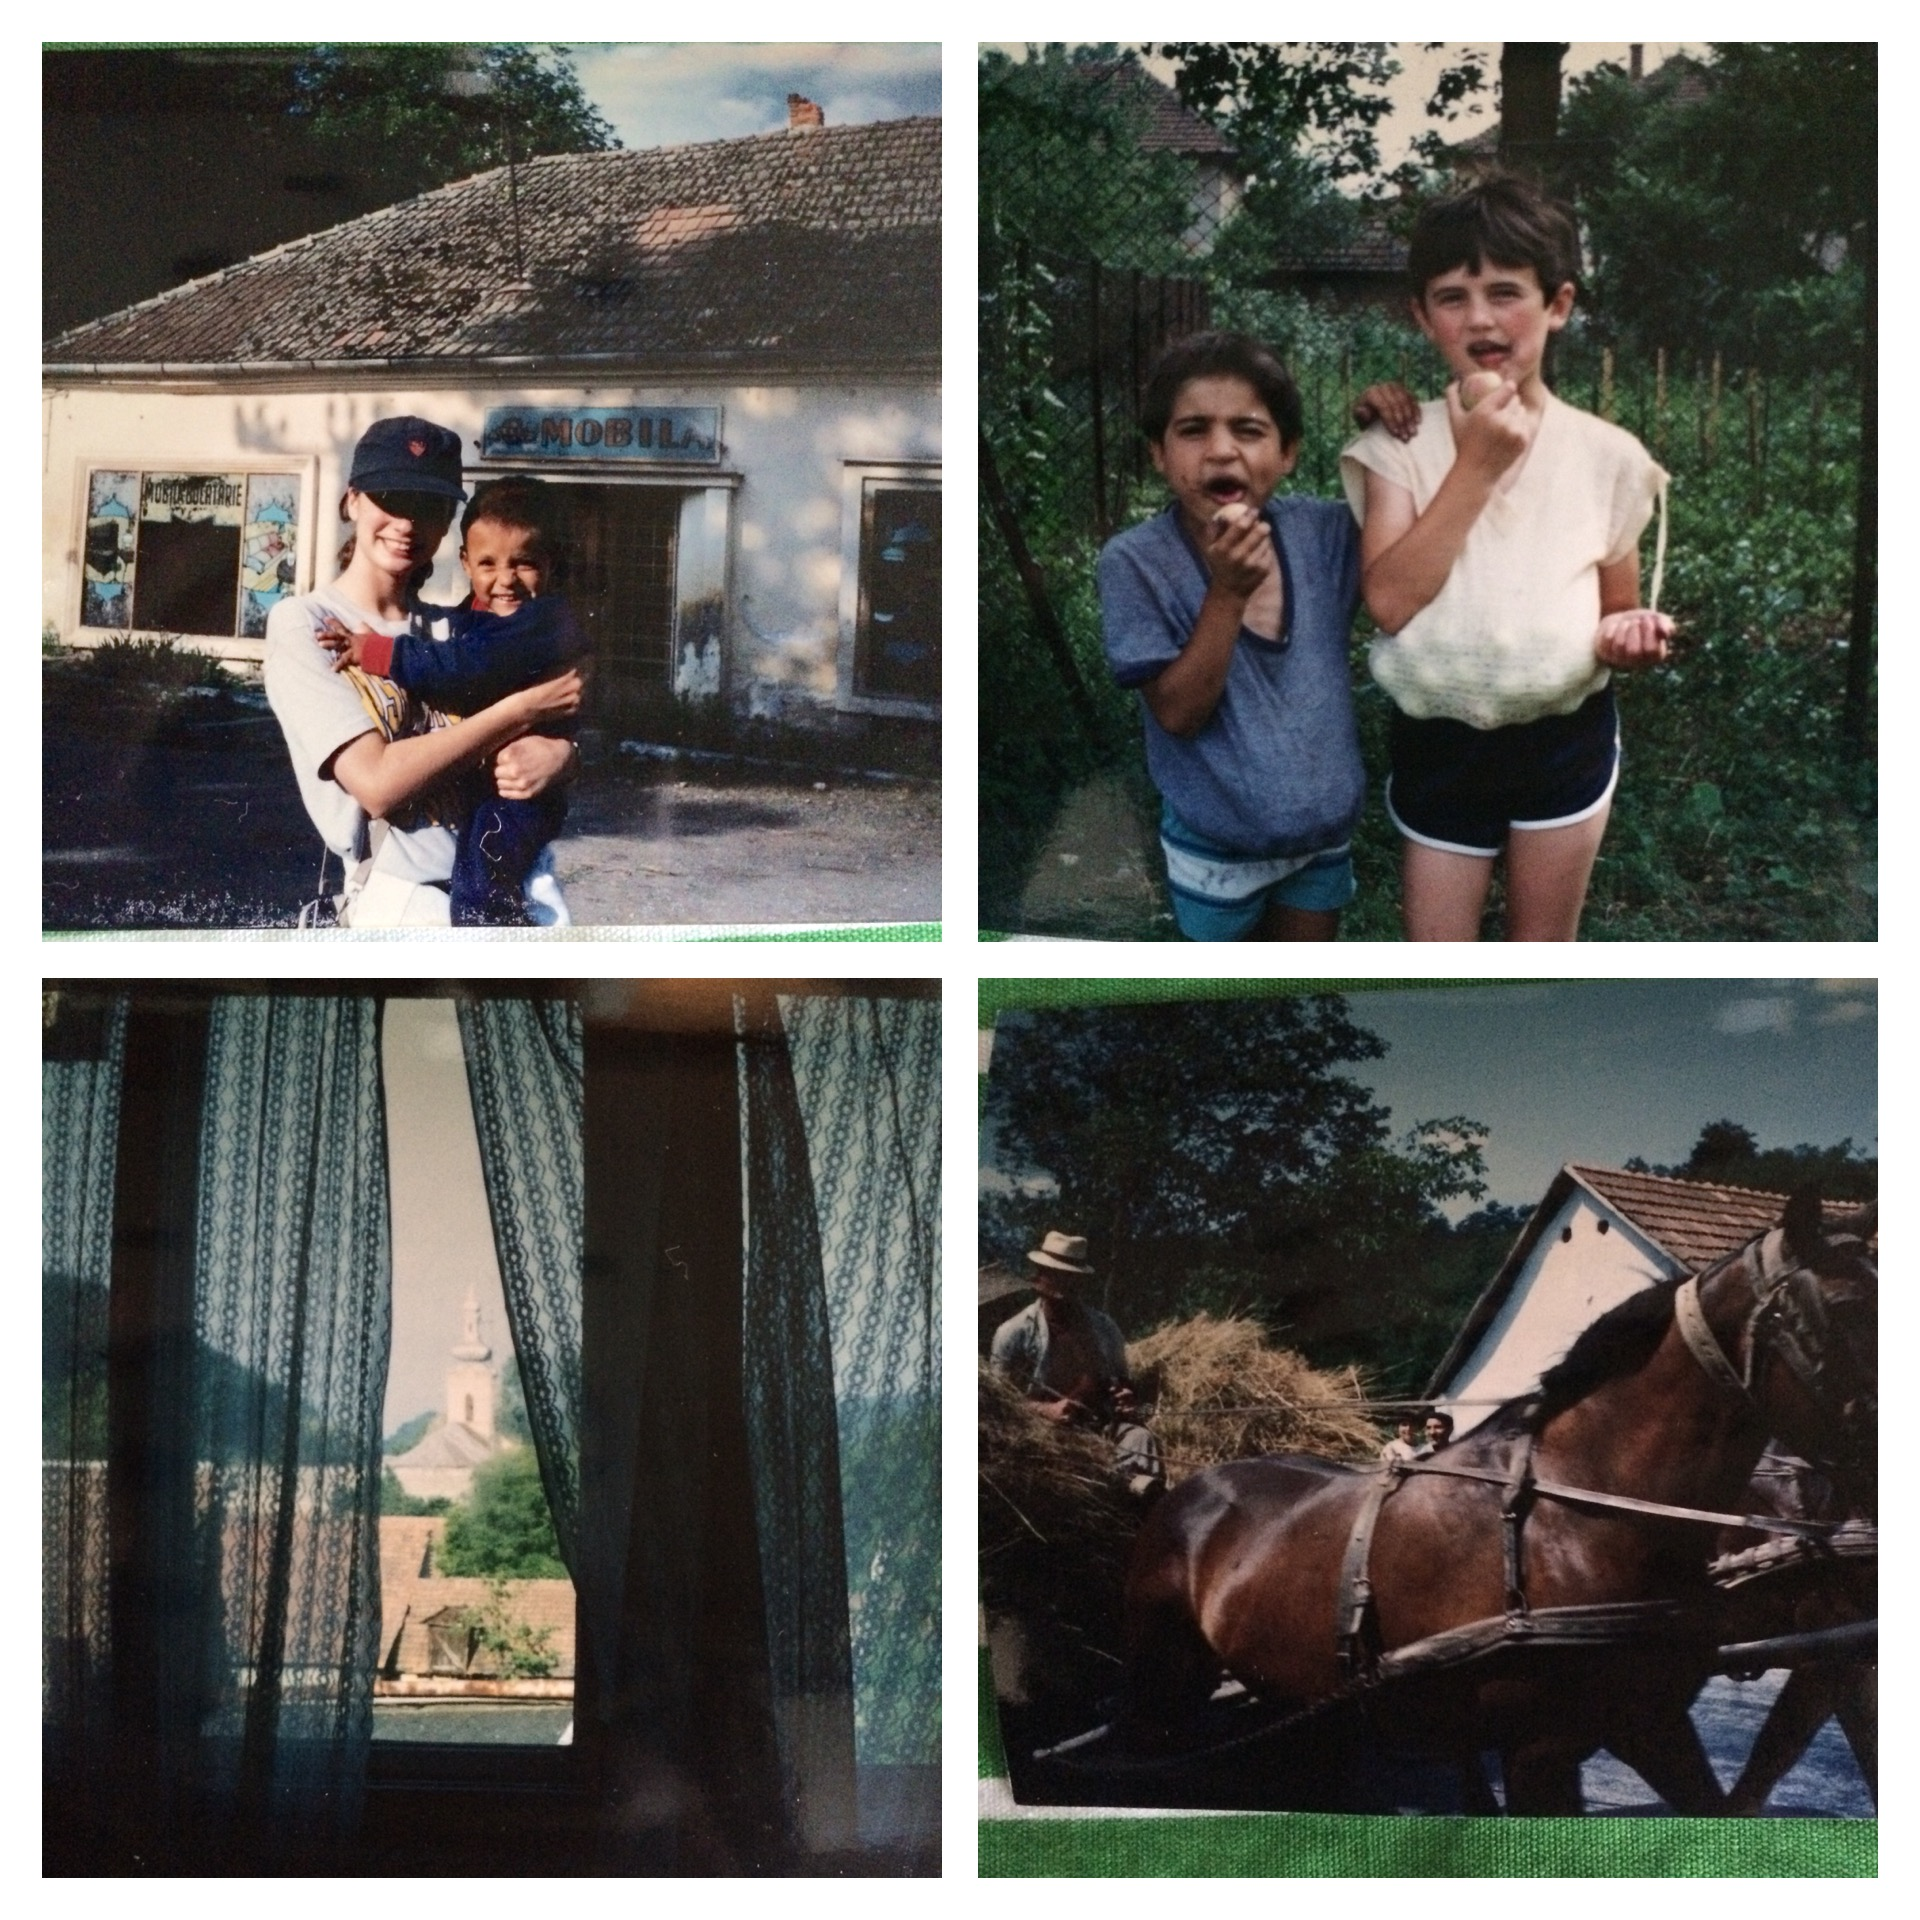 1. 15 year old me, with my buddyAlex, in front of market that had no food 2.crab-apple and berry picking with the kids 3.view from my room 4. horses and wagons shared the roads with cars,